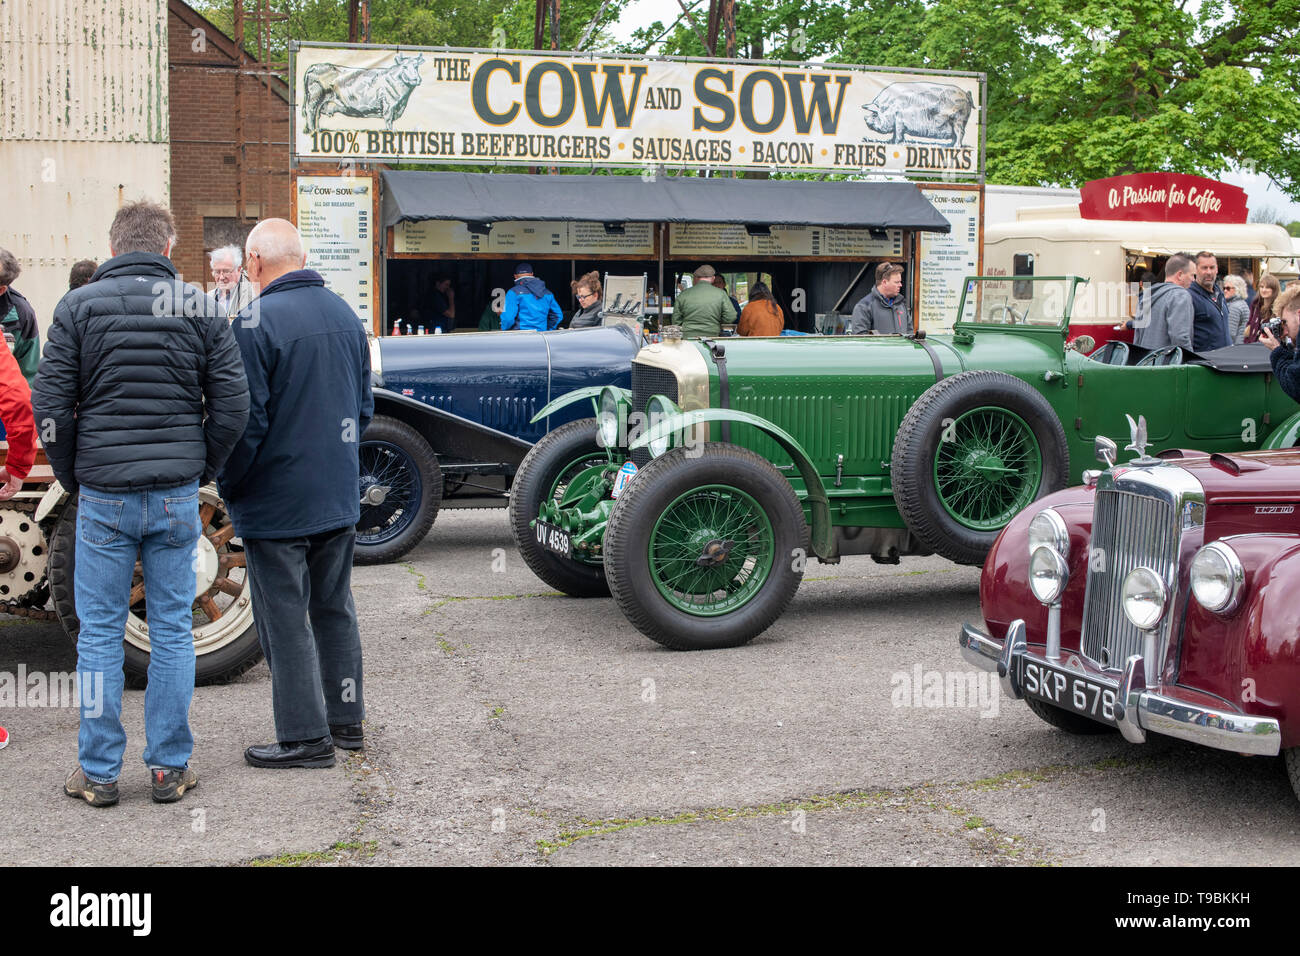 1928 Bentley car at Bicester Heritage Centre. 'Drive it day'. Bicester, Oxfordshire, England - Stock Image